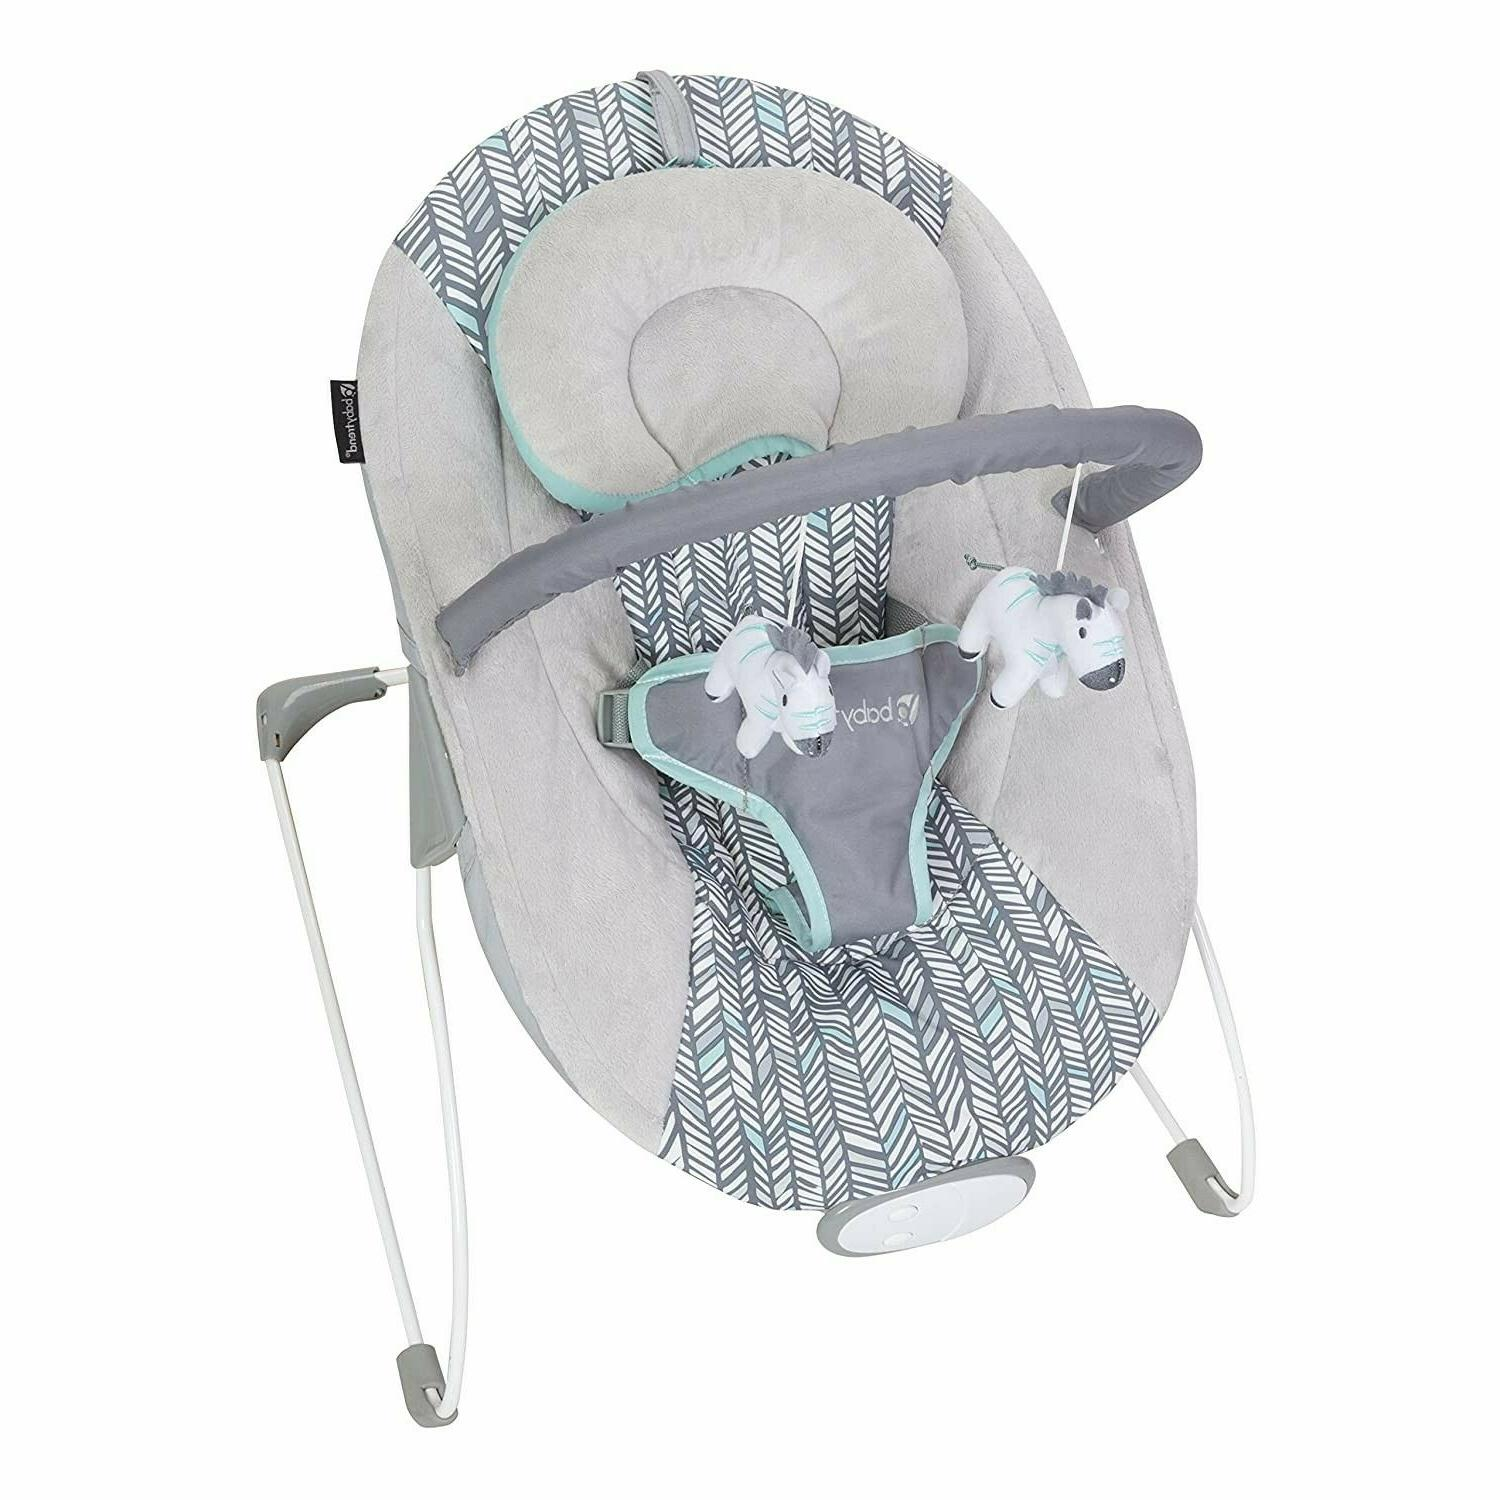 Baby Stroller System with Car Seat Chair Playard Set